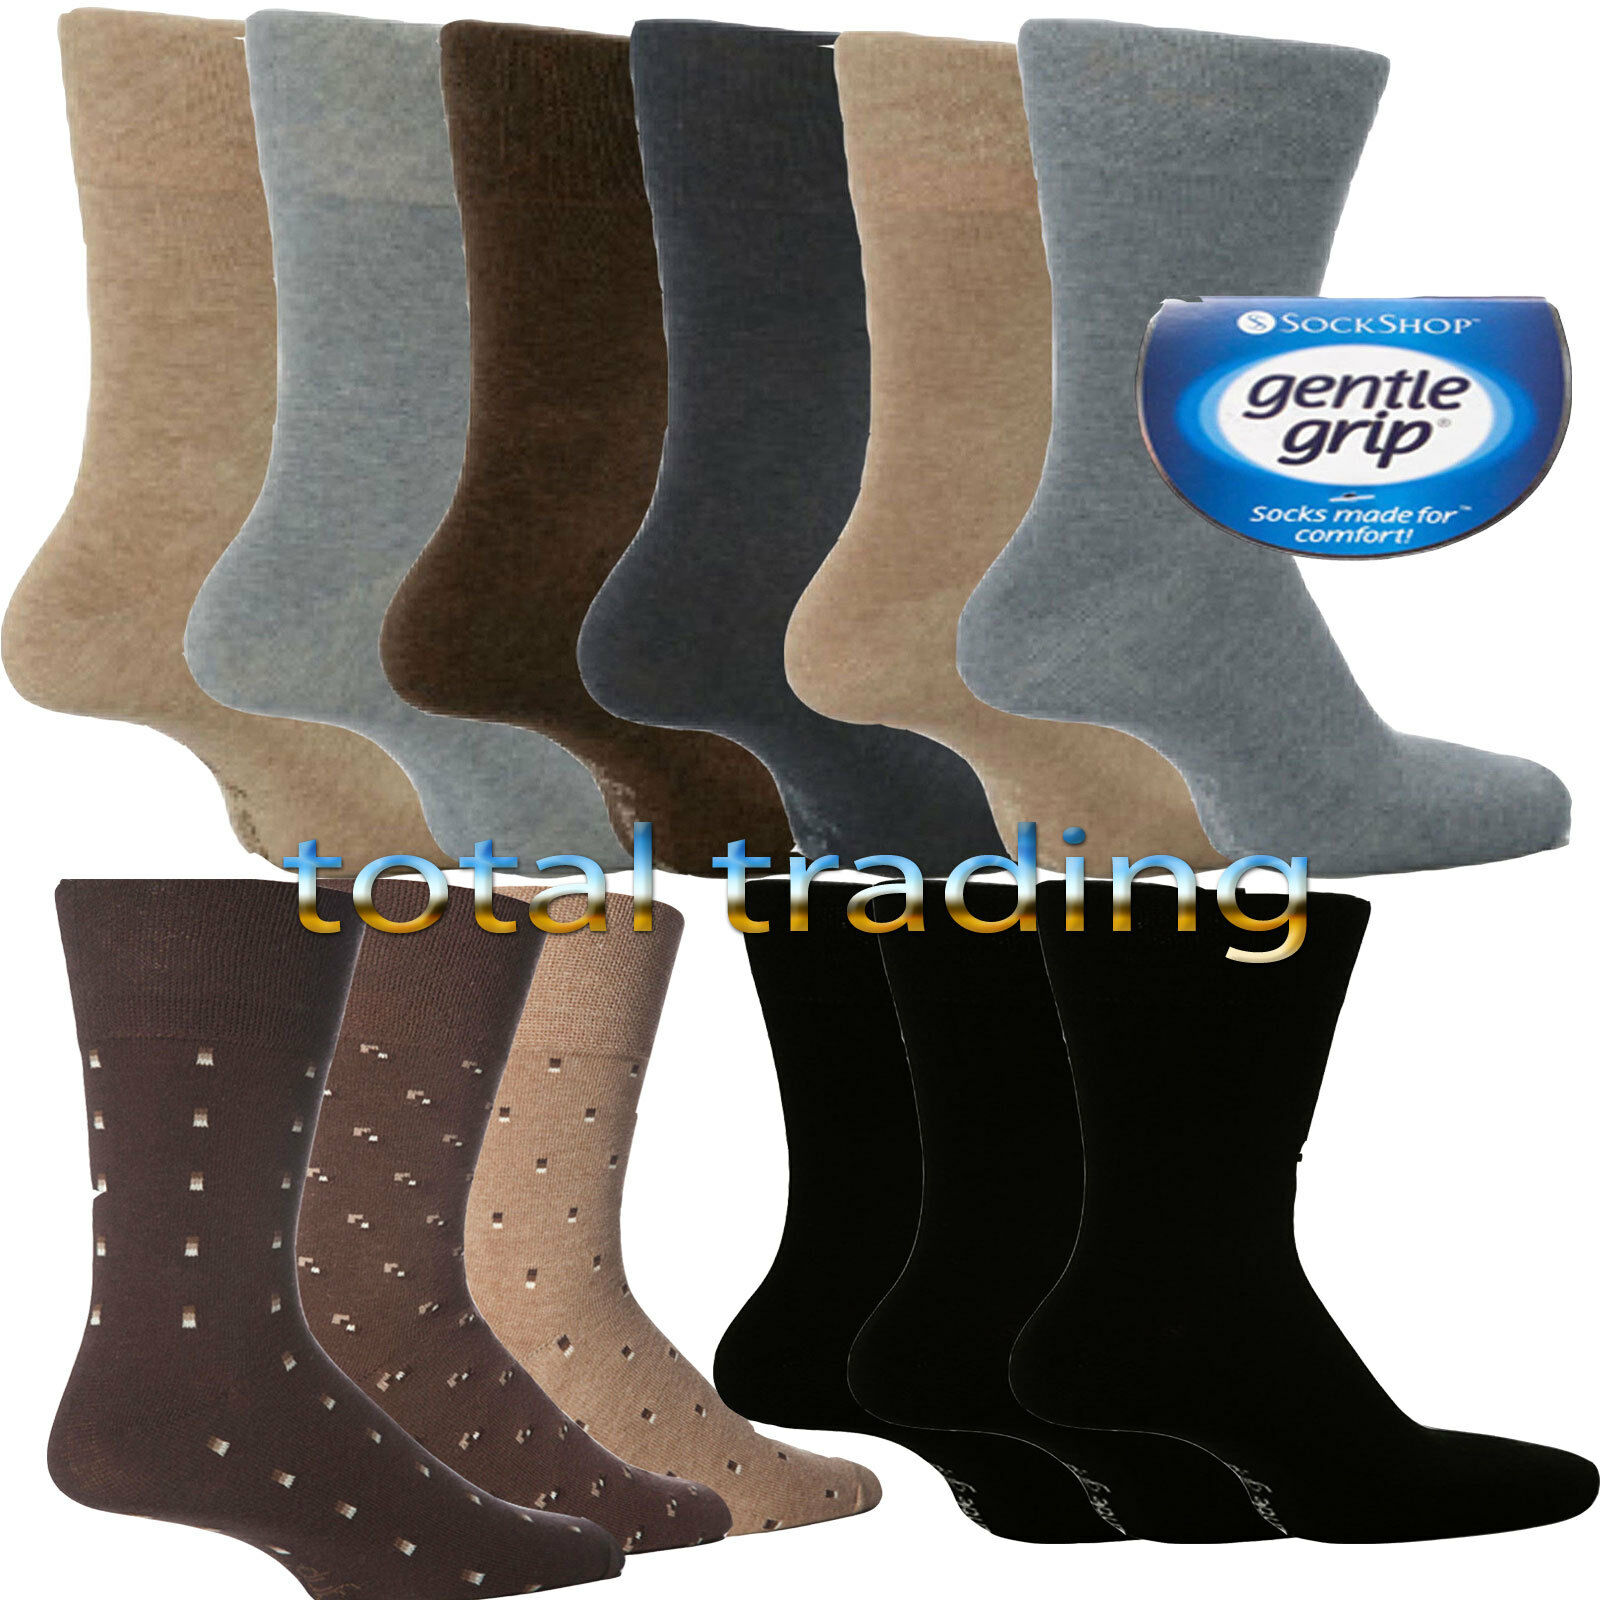 Gather Other Mens Womens Gentle Grip Cotton Socks Seamless Sports Socks 4 Pairs